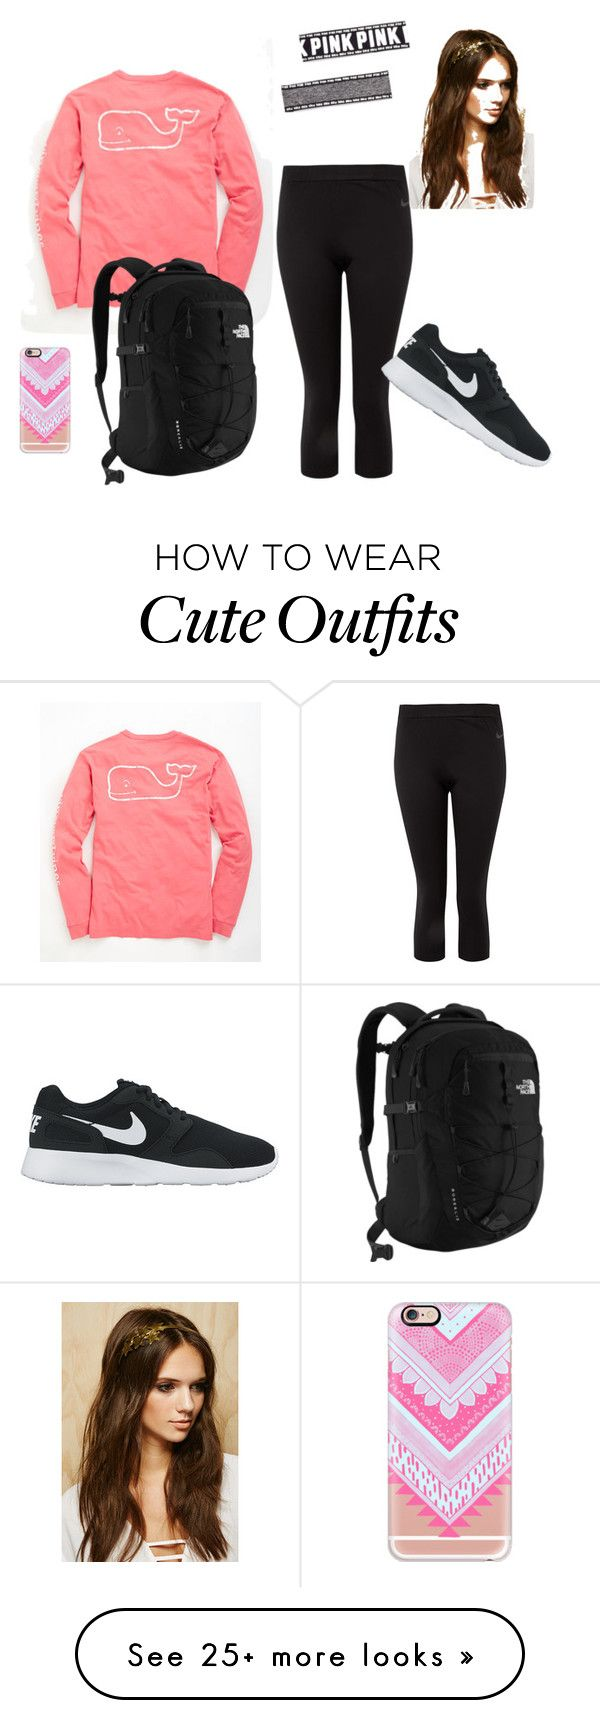 """Cute athletic outfit"" by kvandop on Polyvore featuring Vineyard Vines, NIKE, The North Face, Casetify and Forever 21"